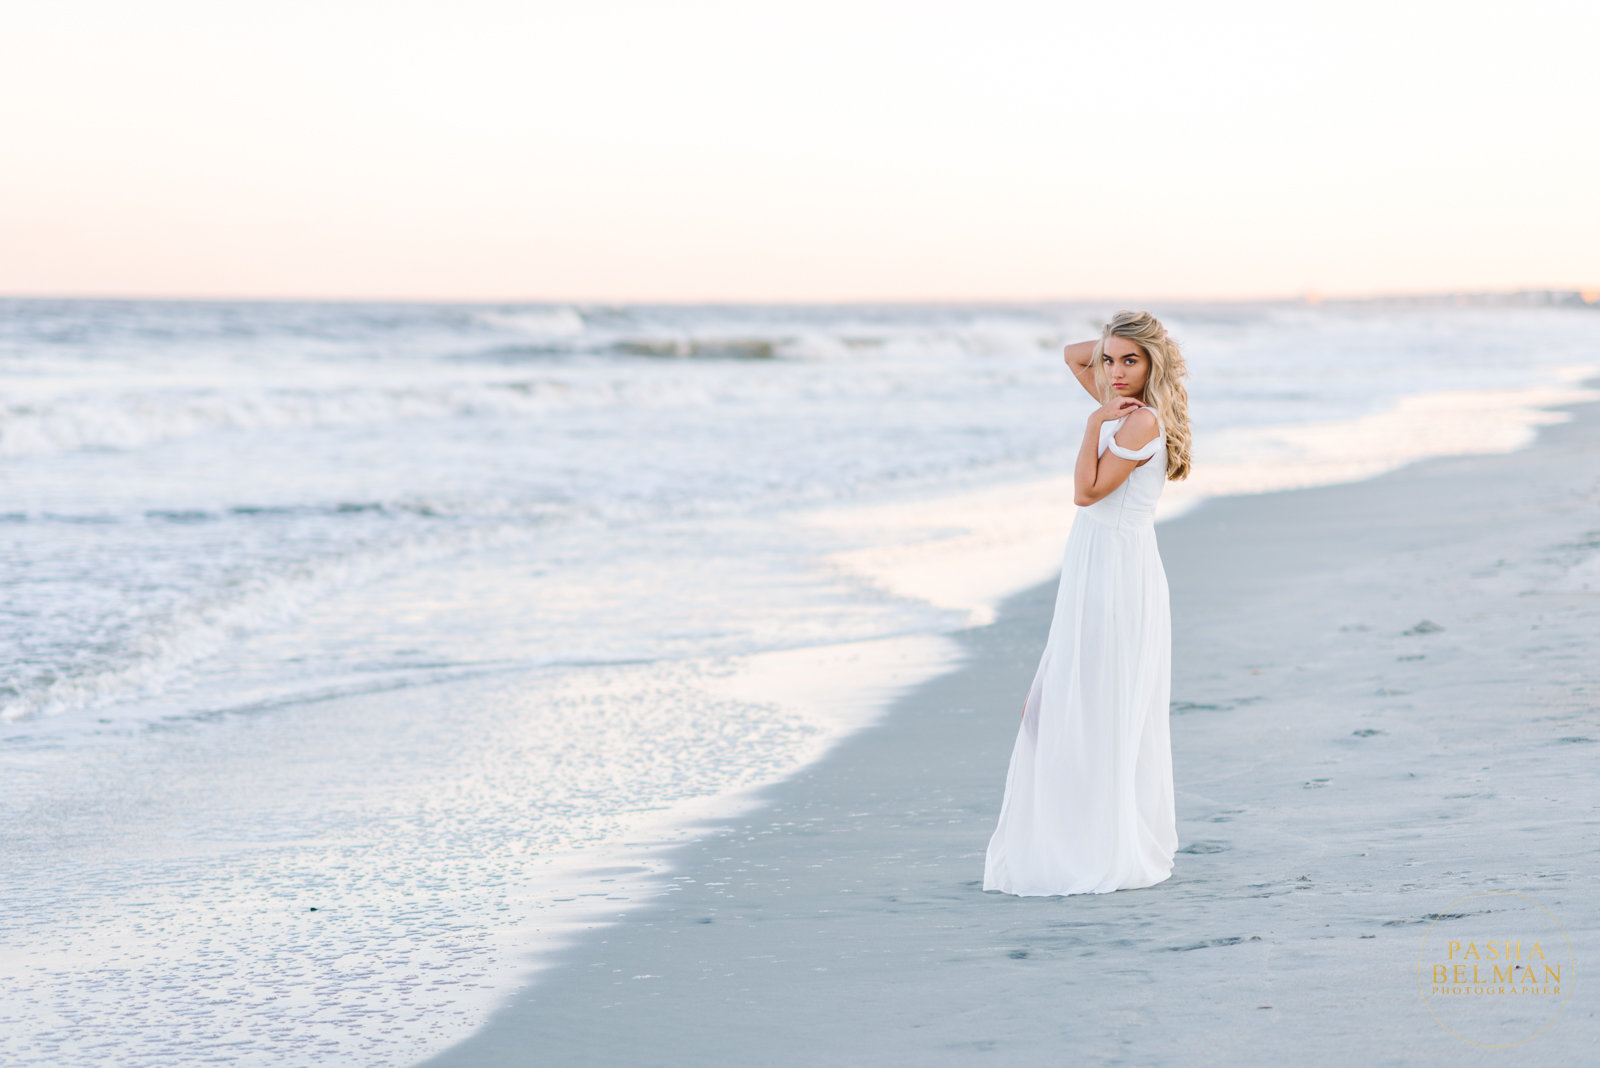 Senior Photography - Family Photography - Wedding Photography by Pasha Belman photographers in Myrtle Beach South Carolina